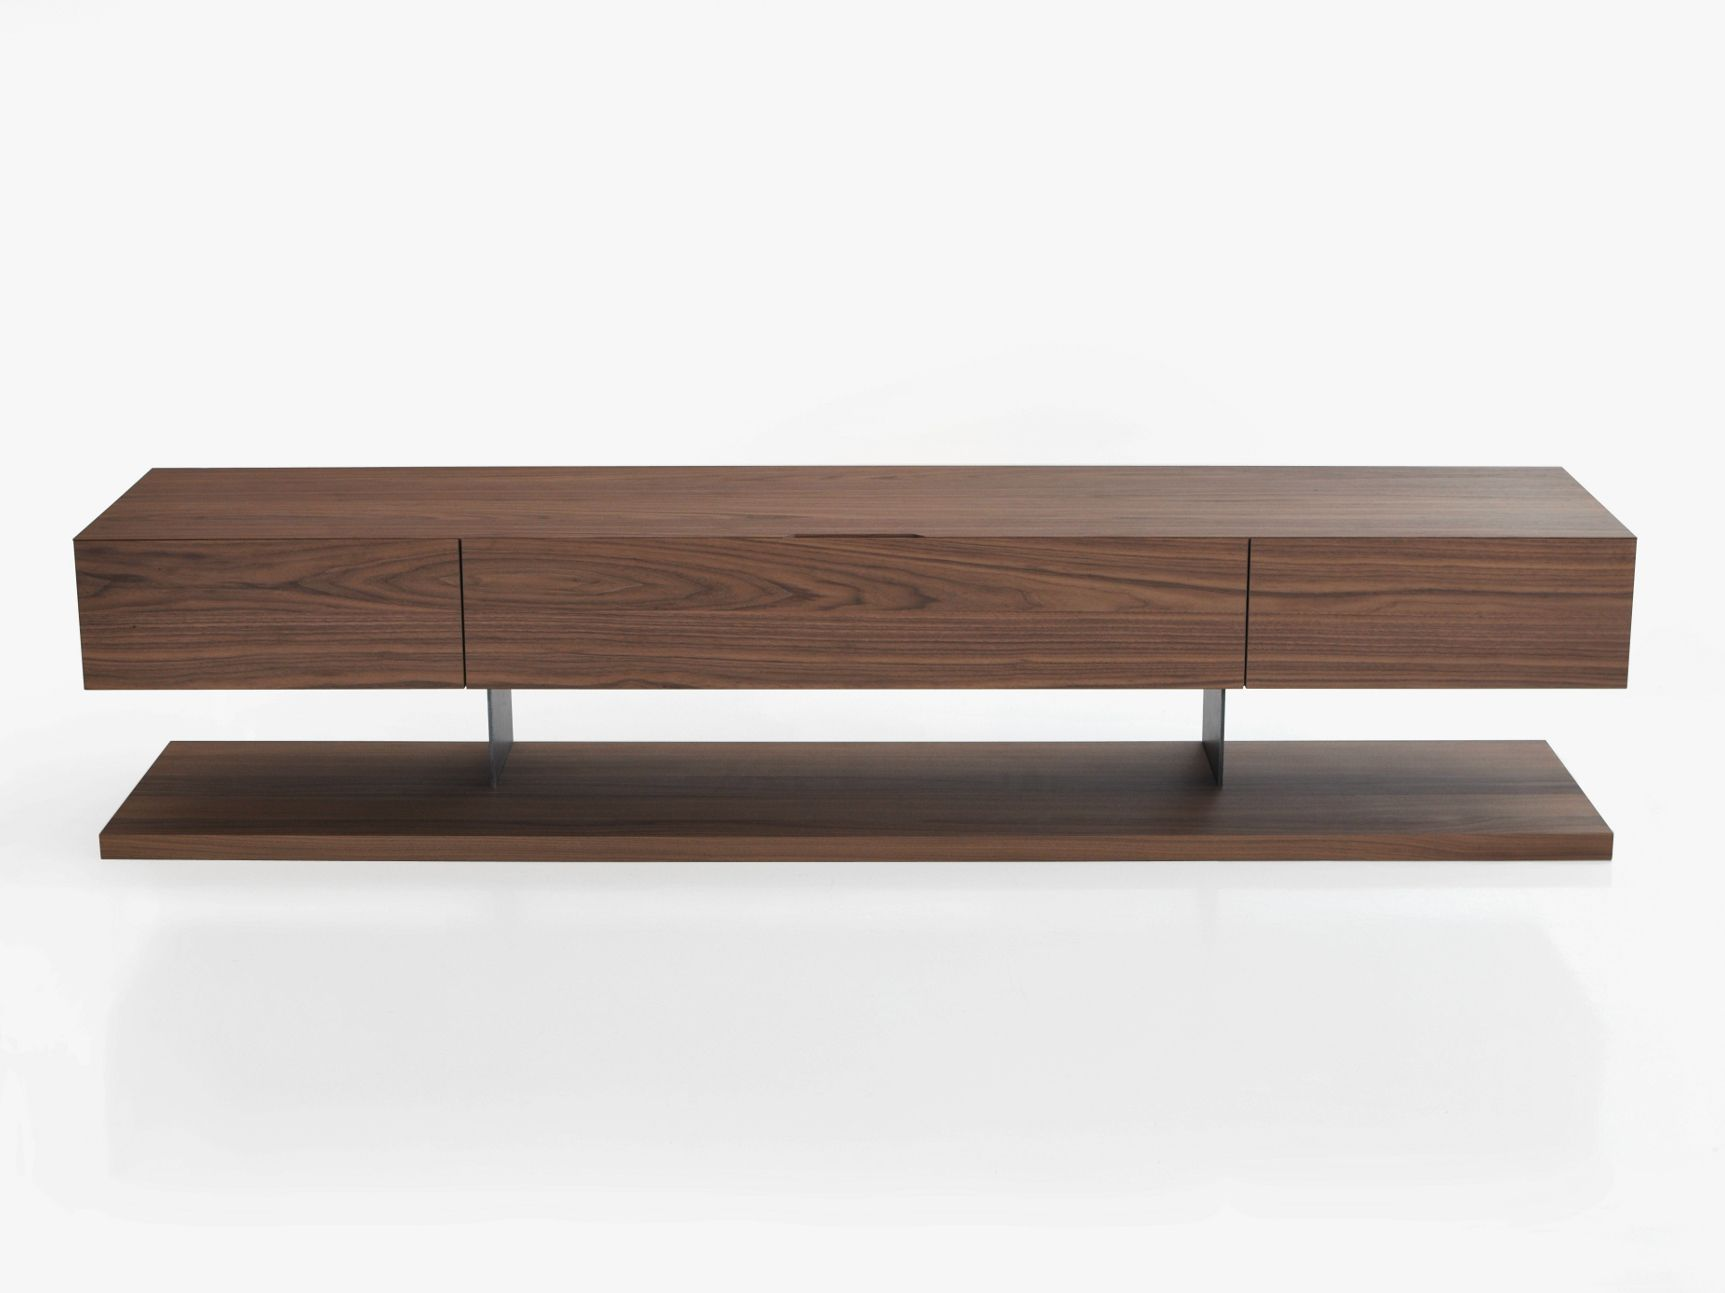 Standard Tv Stand By Bensen Wooden Tv Cabinet Wooden Console Table Console Table With Drawers